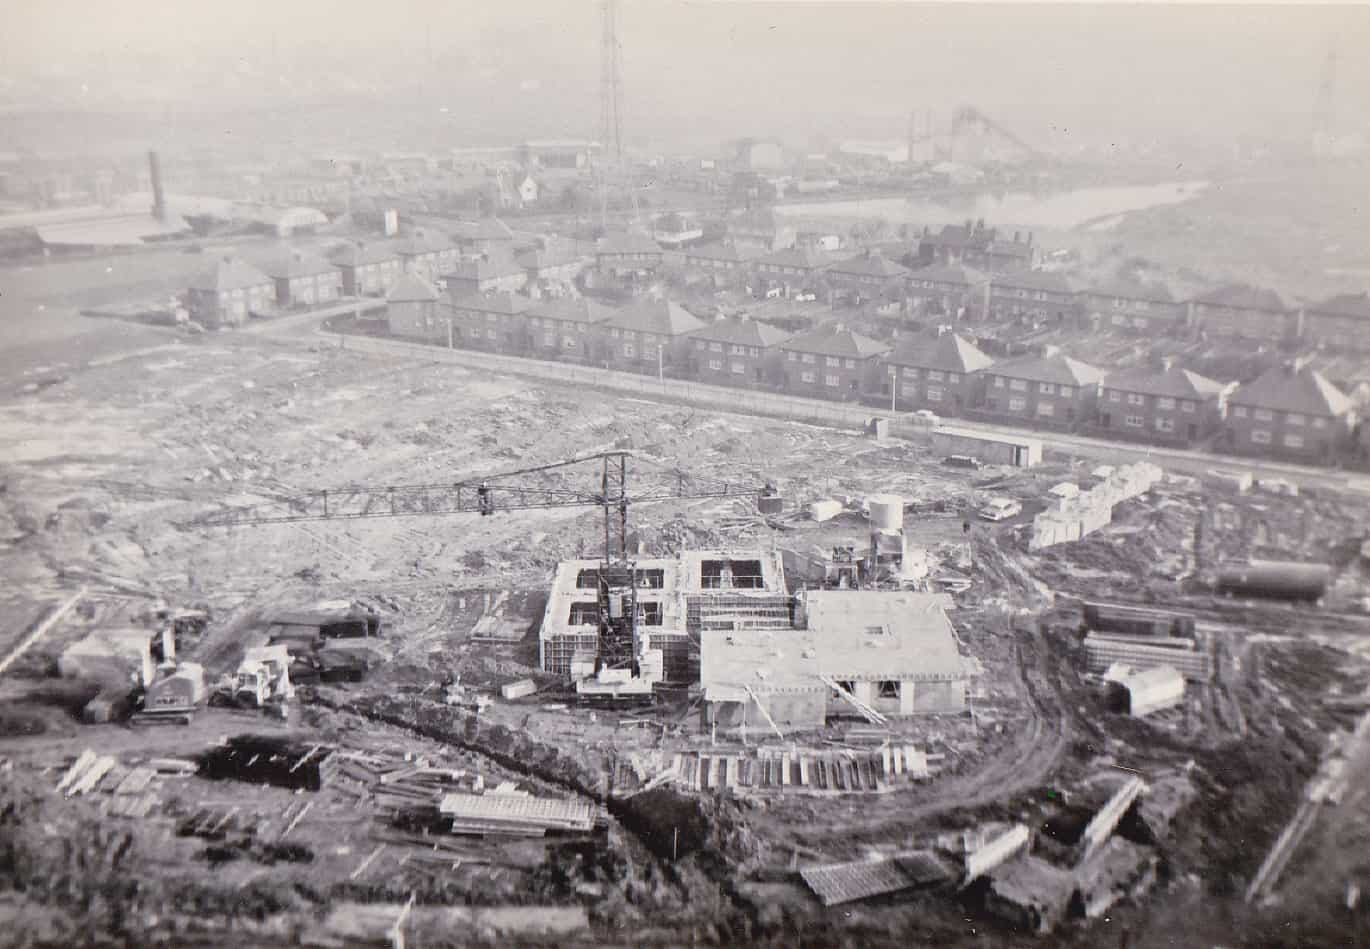 Lion Farm estate under construction. 1960s. Photo by James Rippin